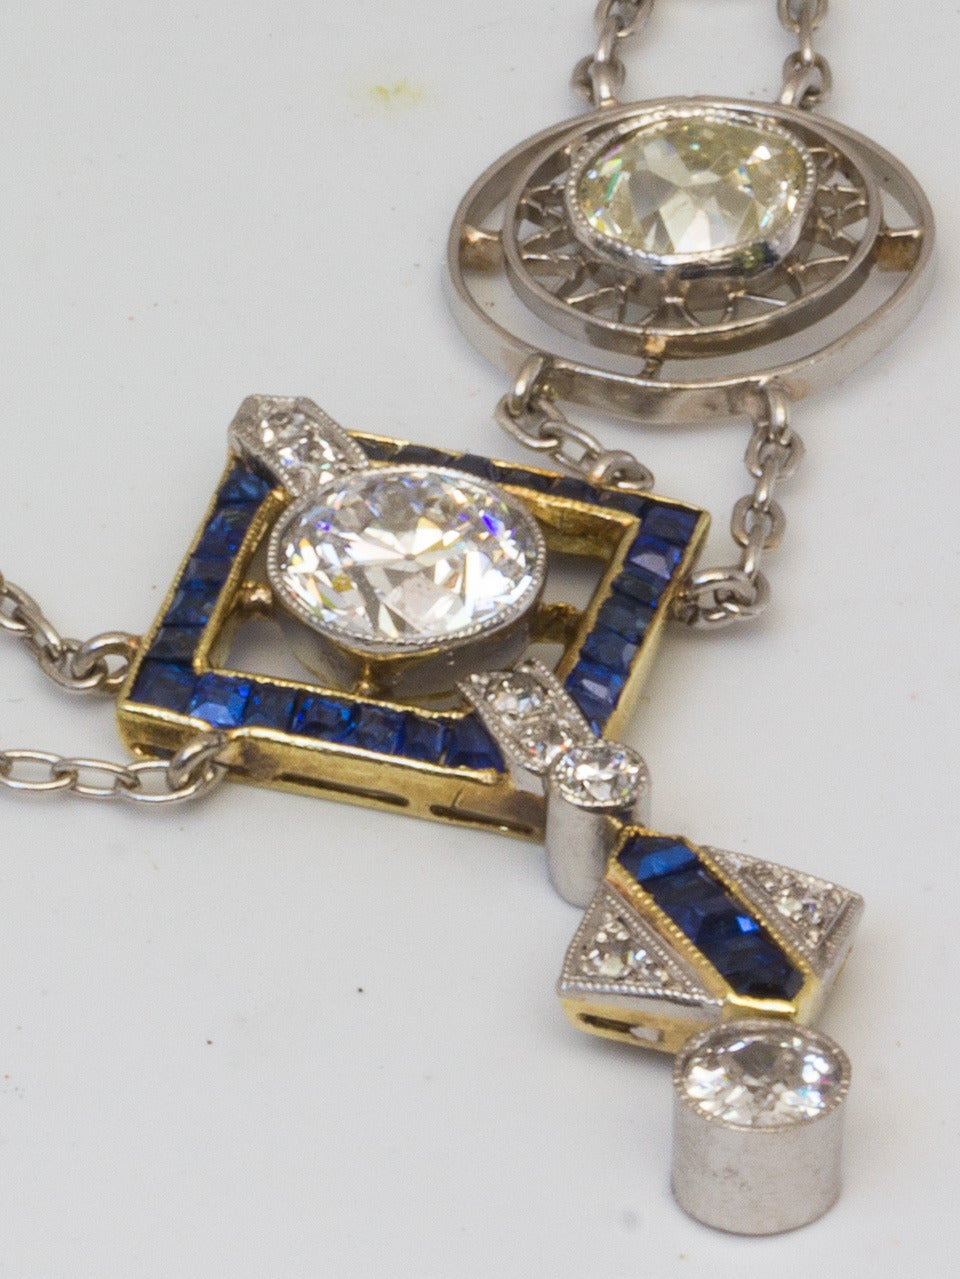 1920s Art Deco 3.50 Carat Platinum 18 Karat and Diamond Lavalier Necklace For Sale 2